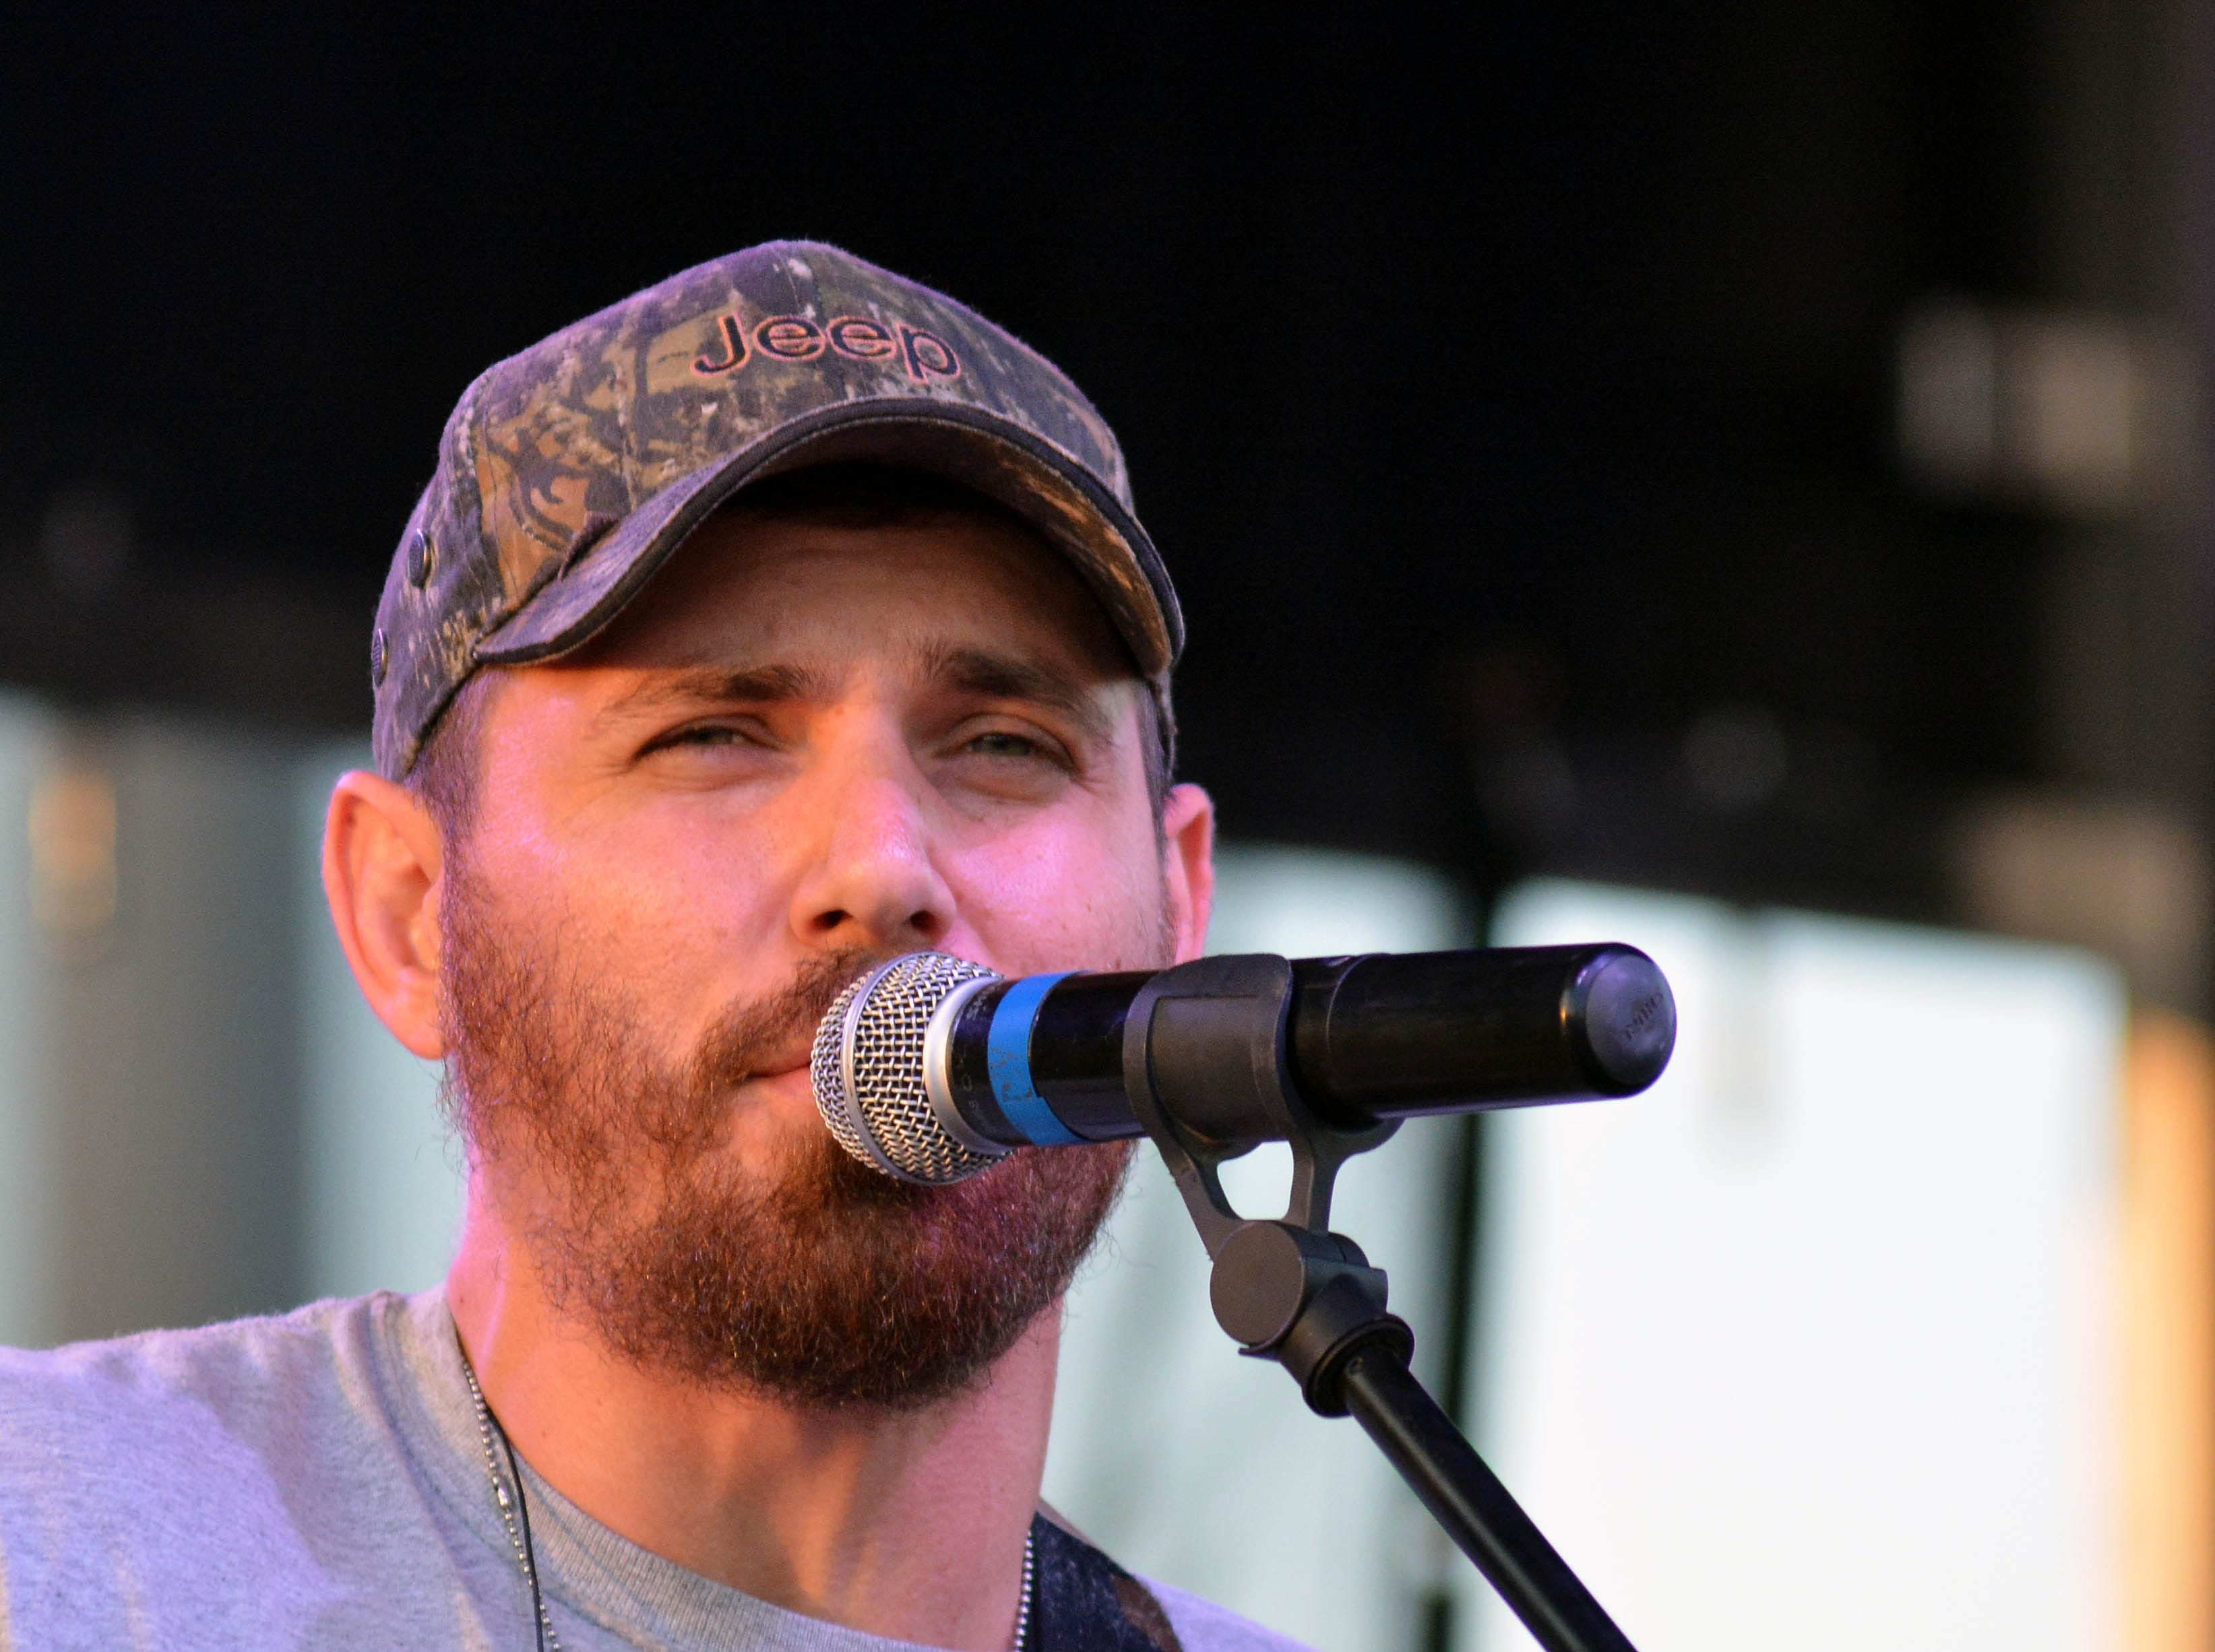 Vince Alten and The Riff Raff take the stage at the Las Cruces Country Music Festival on Friday, Oct. 19, 2018.